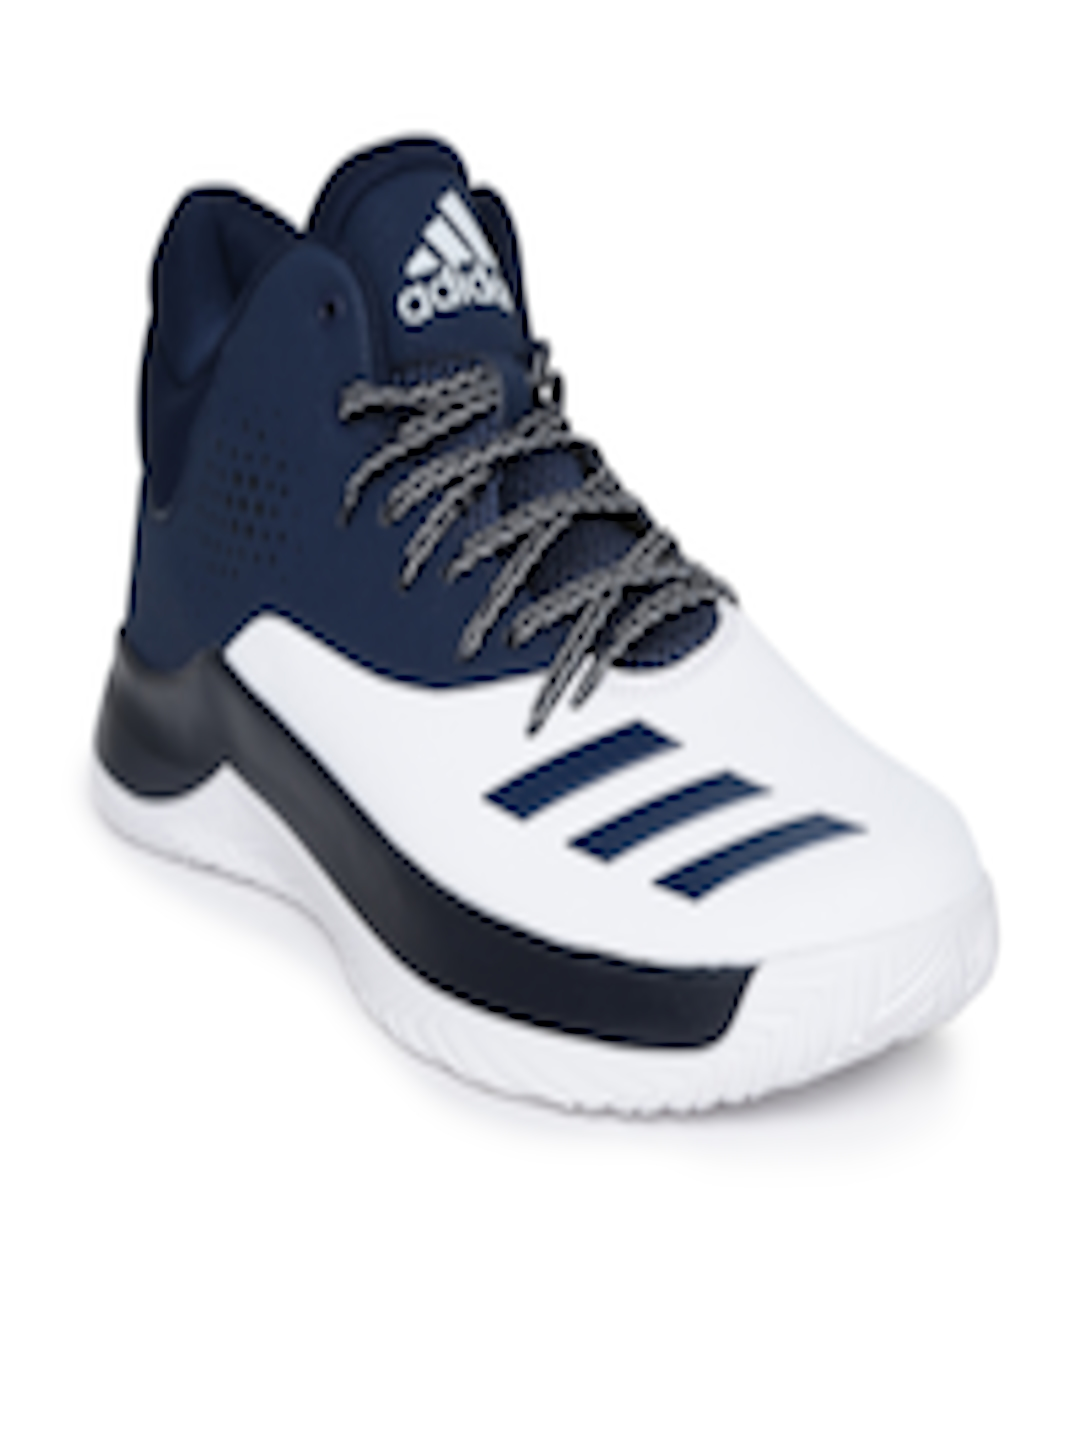 Adidas Floaters Shoes